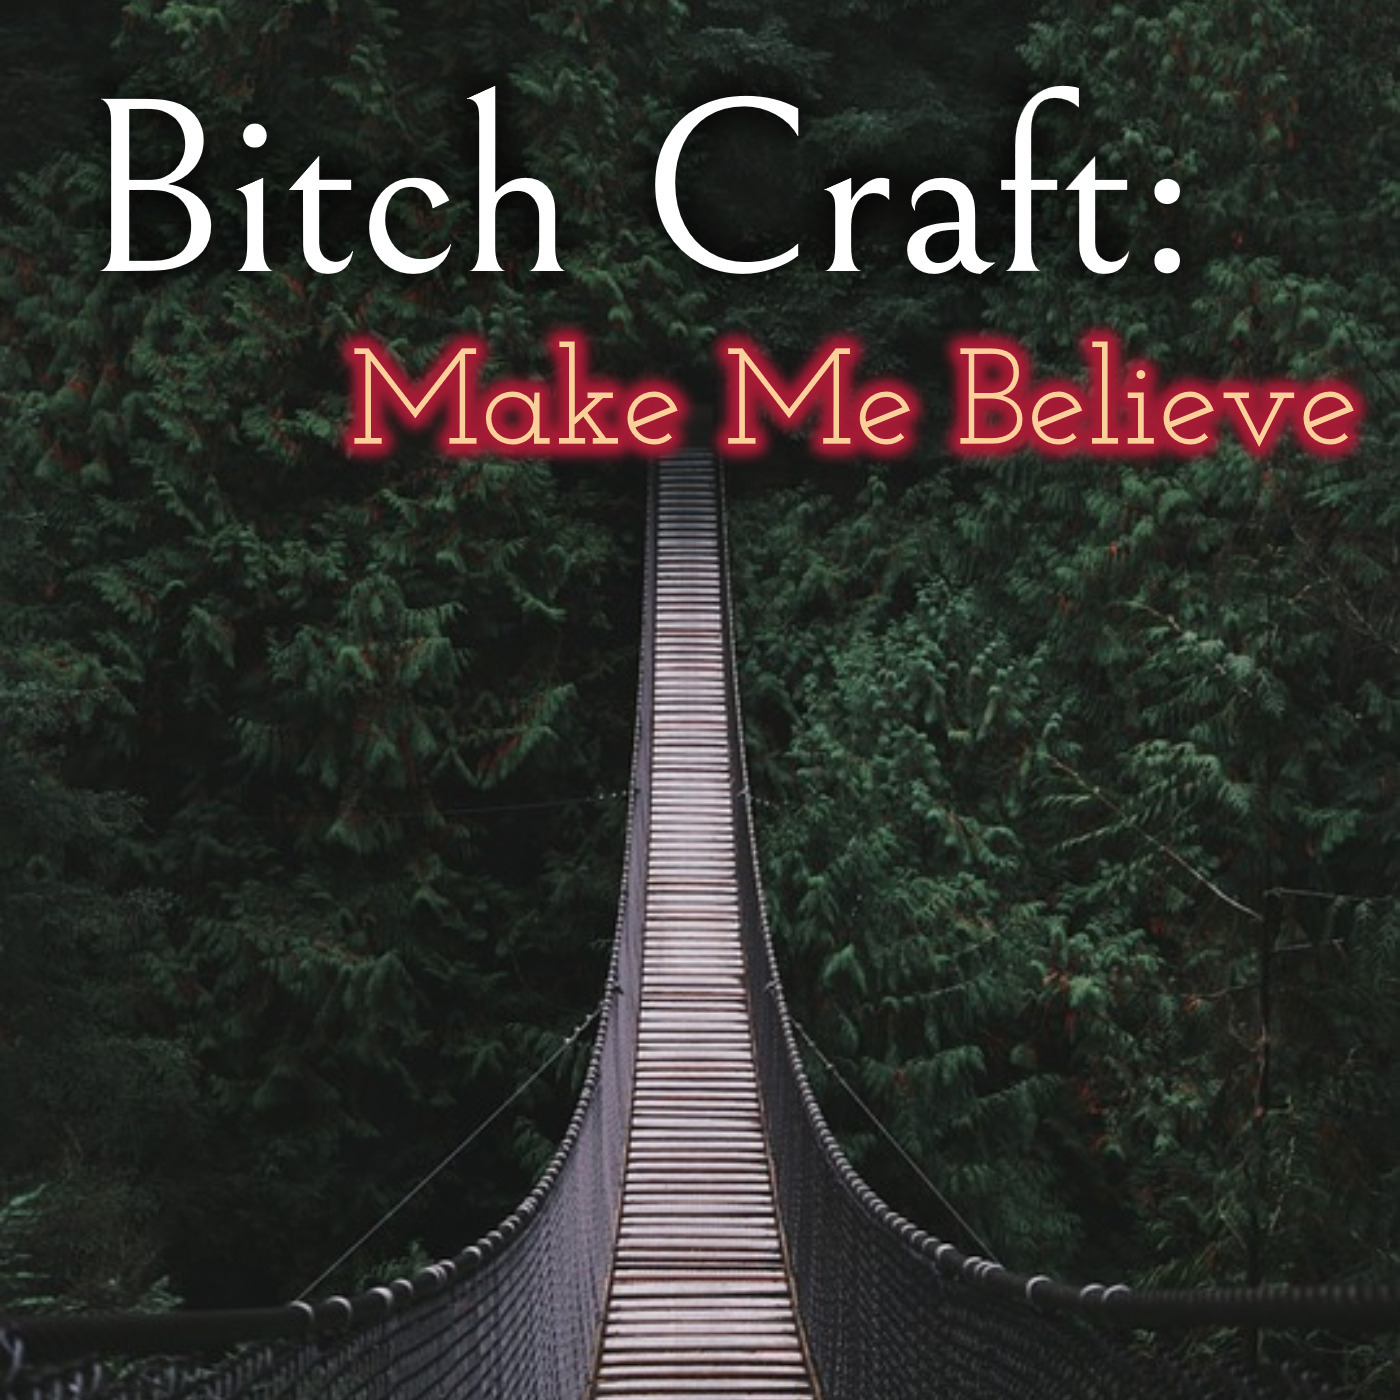 Bitch Craft- Make Me Believe